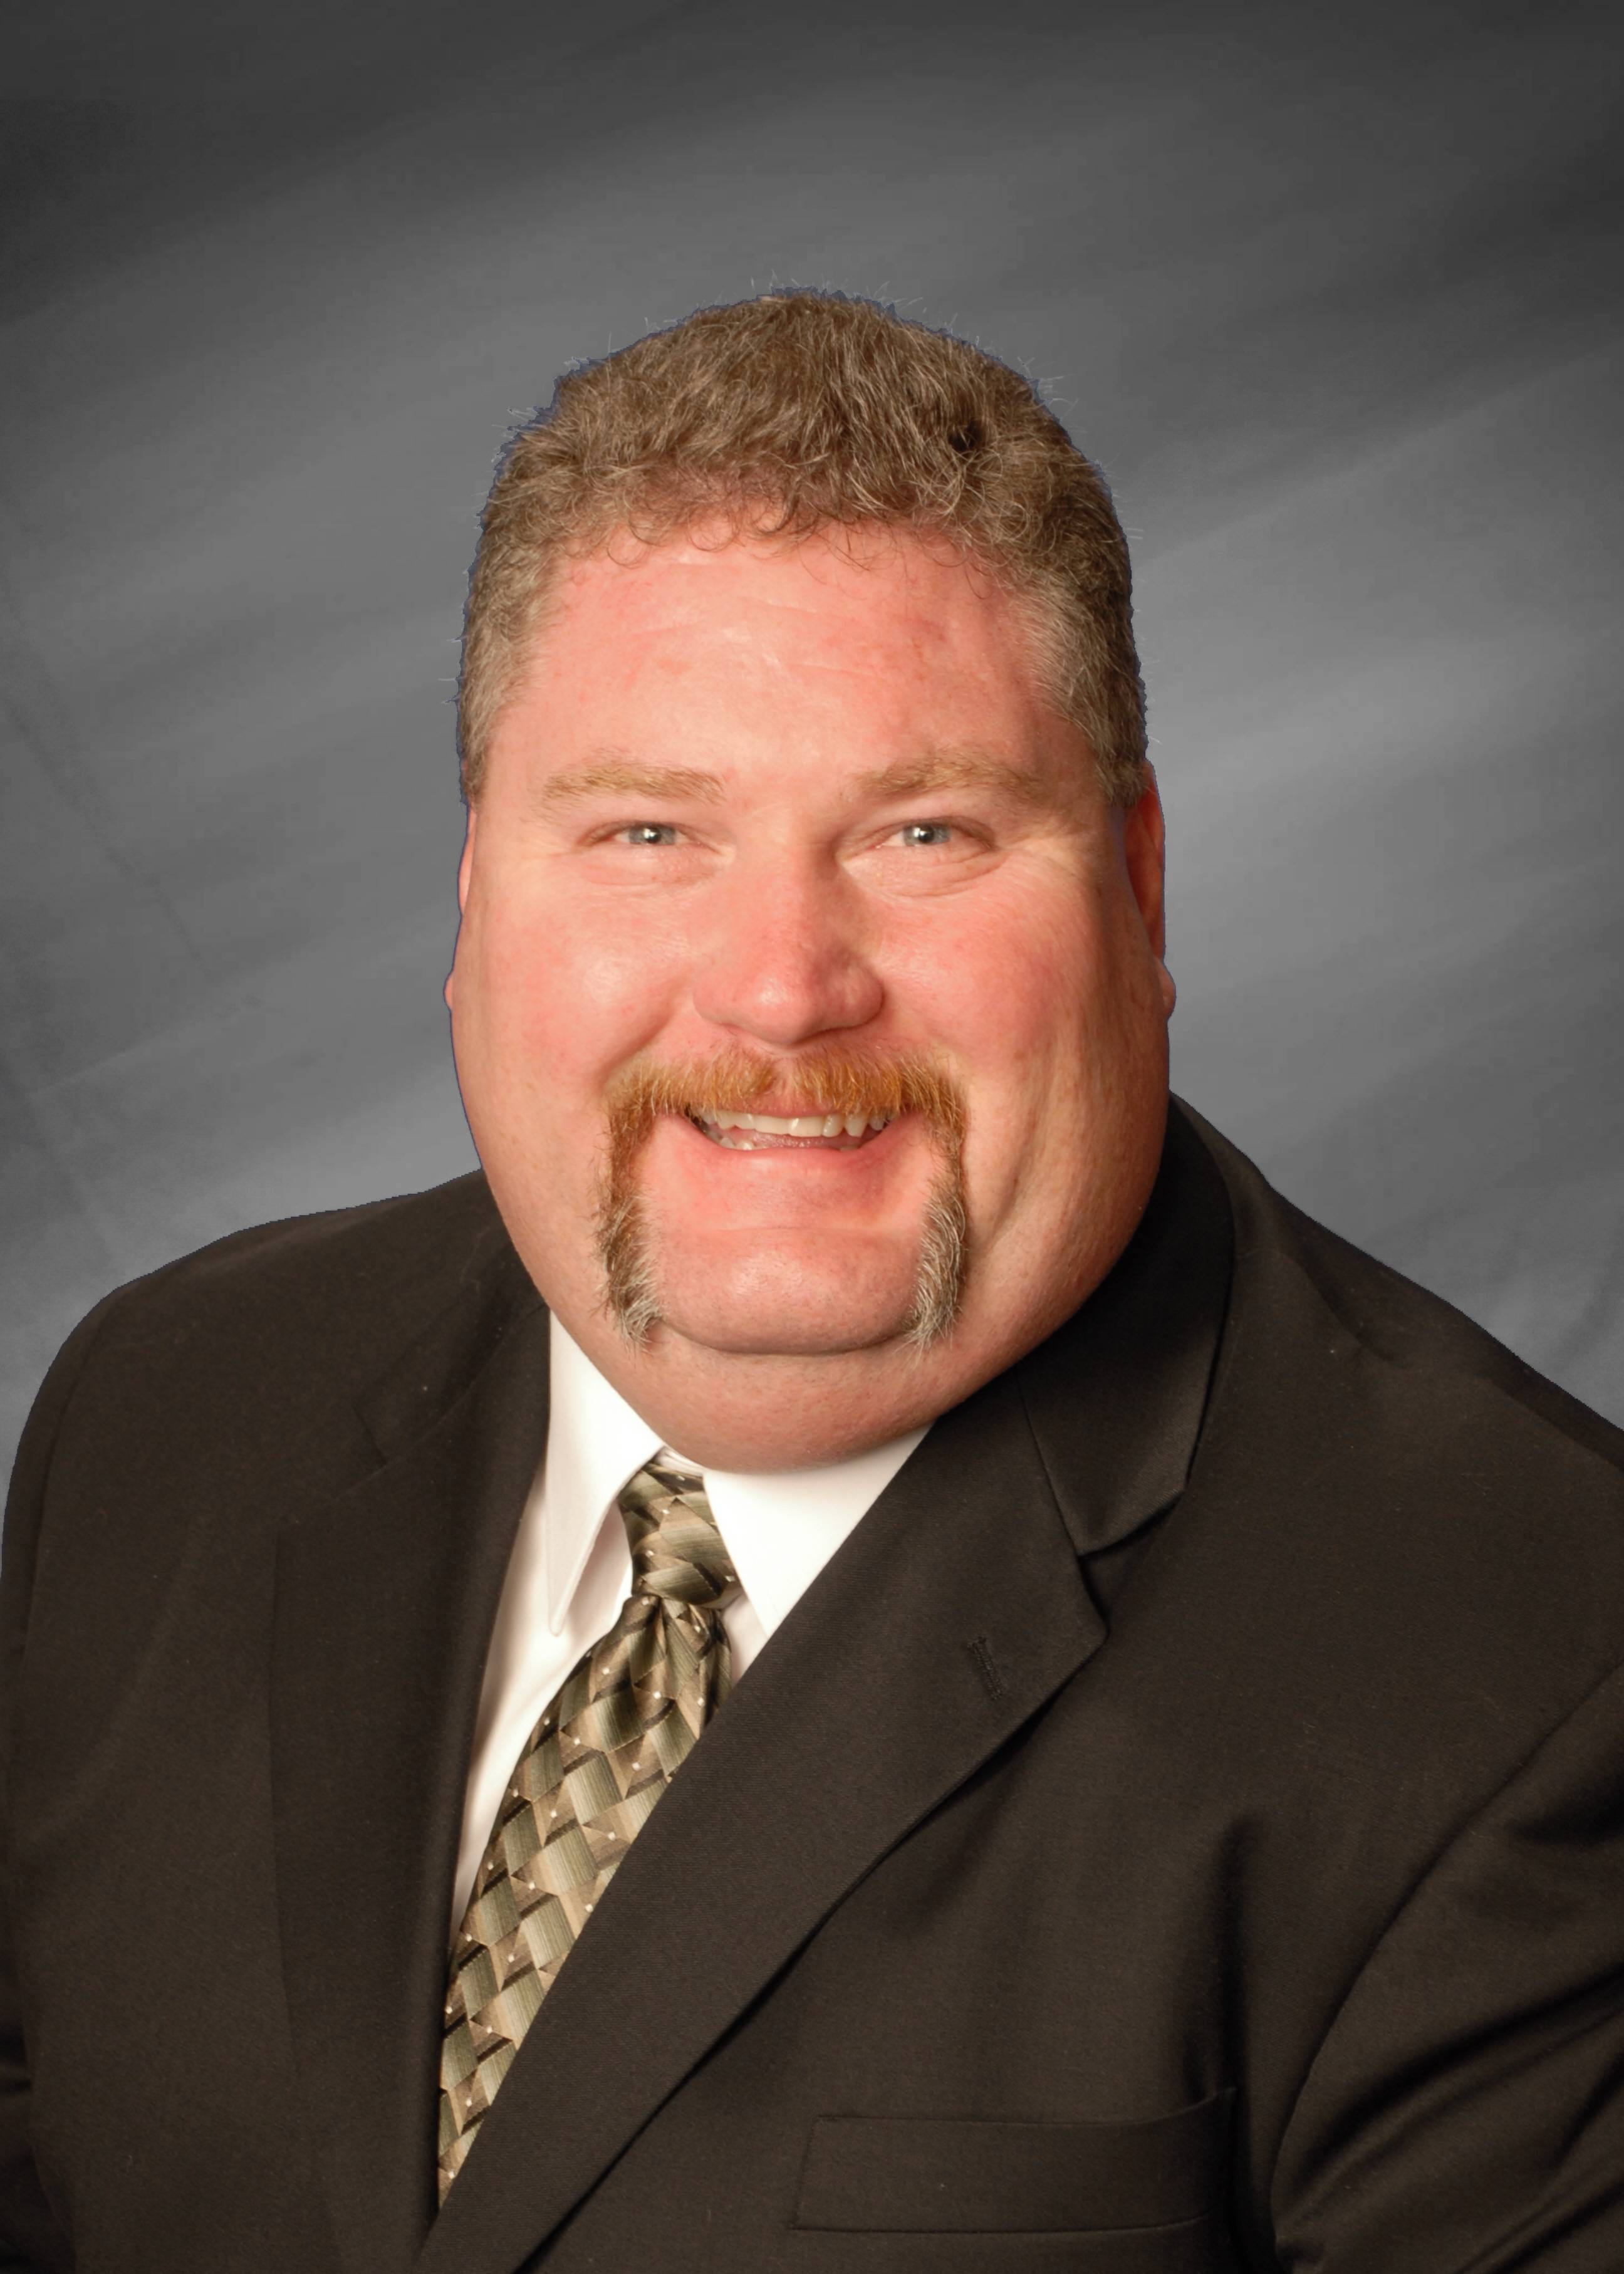 Sugar Grove Trustee Kevin Geary is resigning, effective Aug. 31, because he moving to western Illinois.